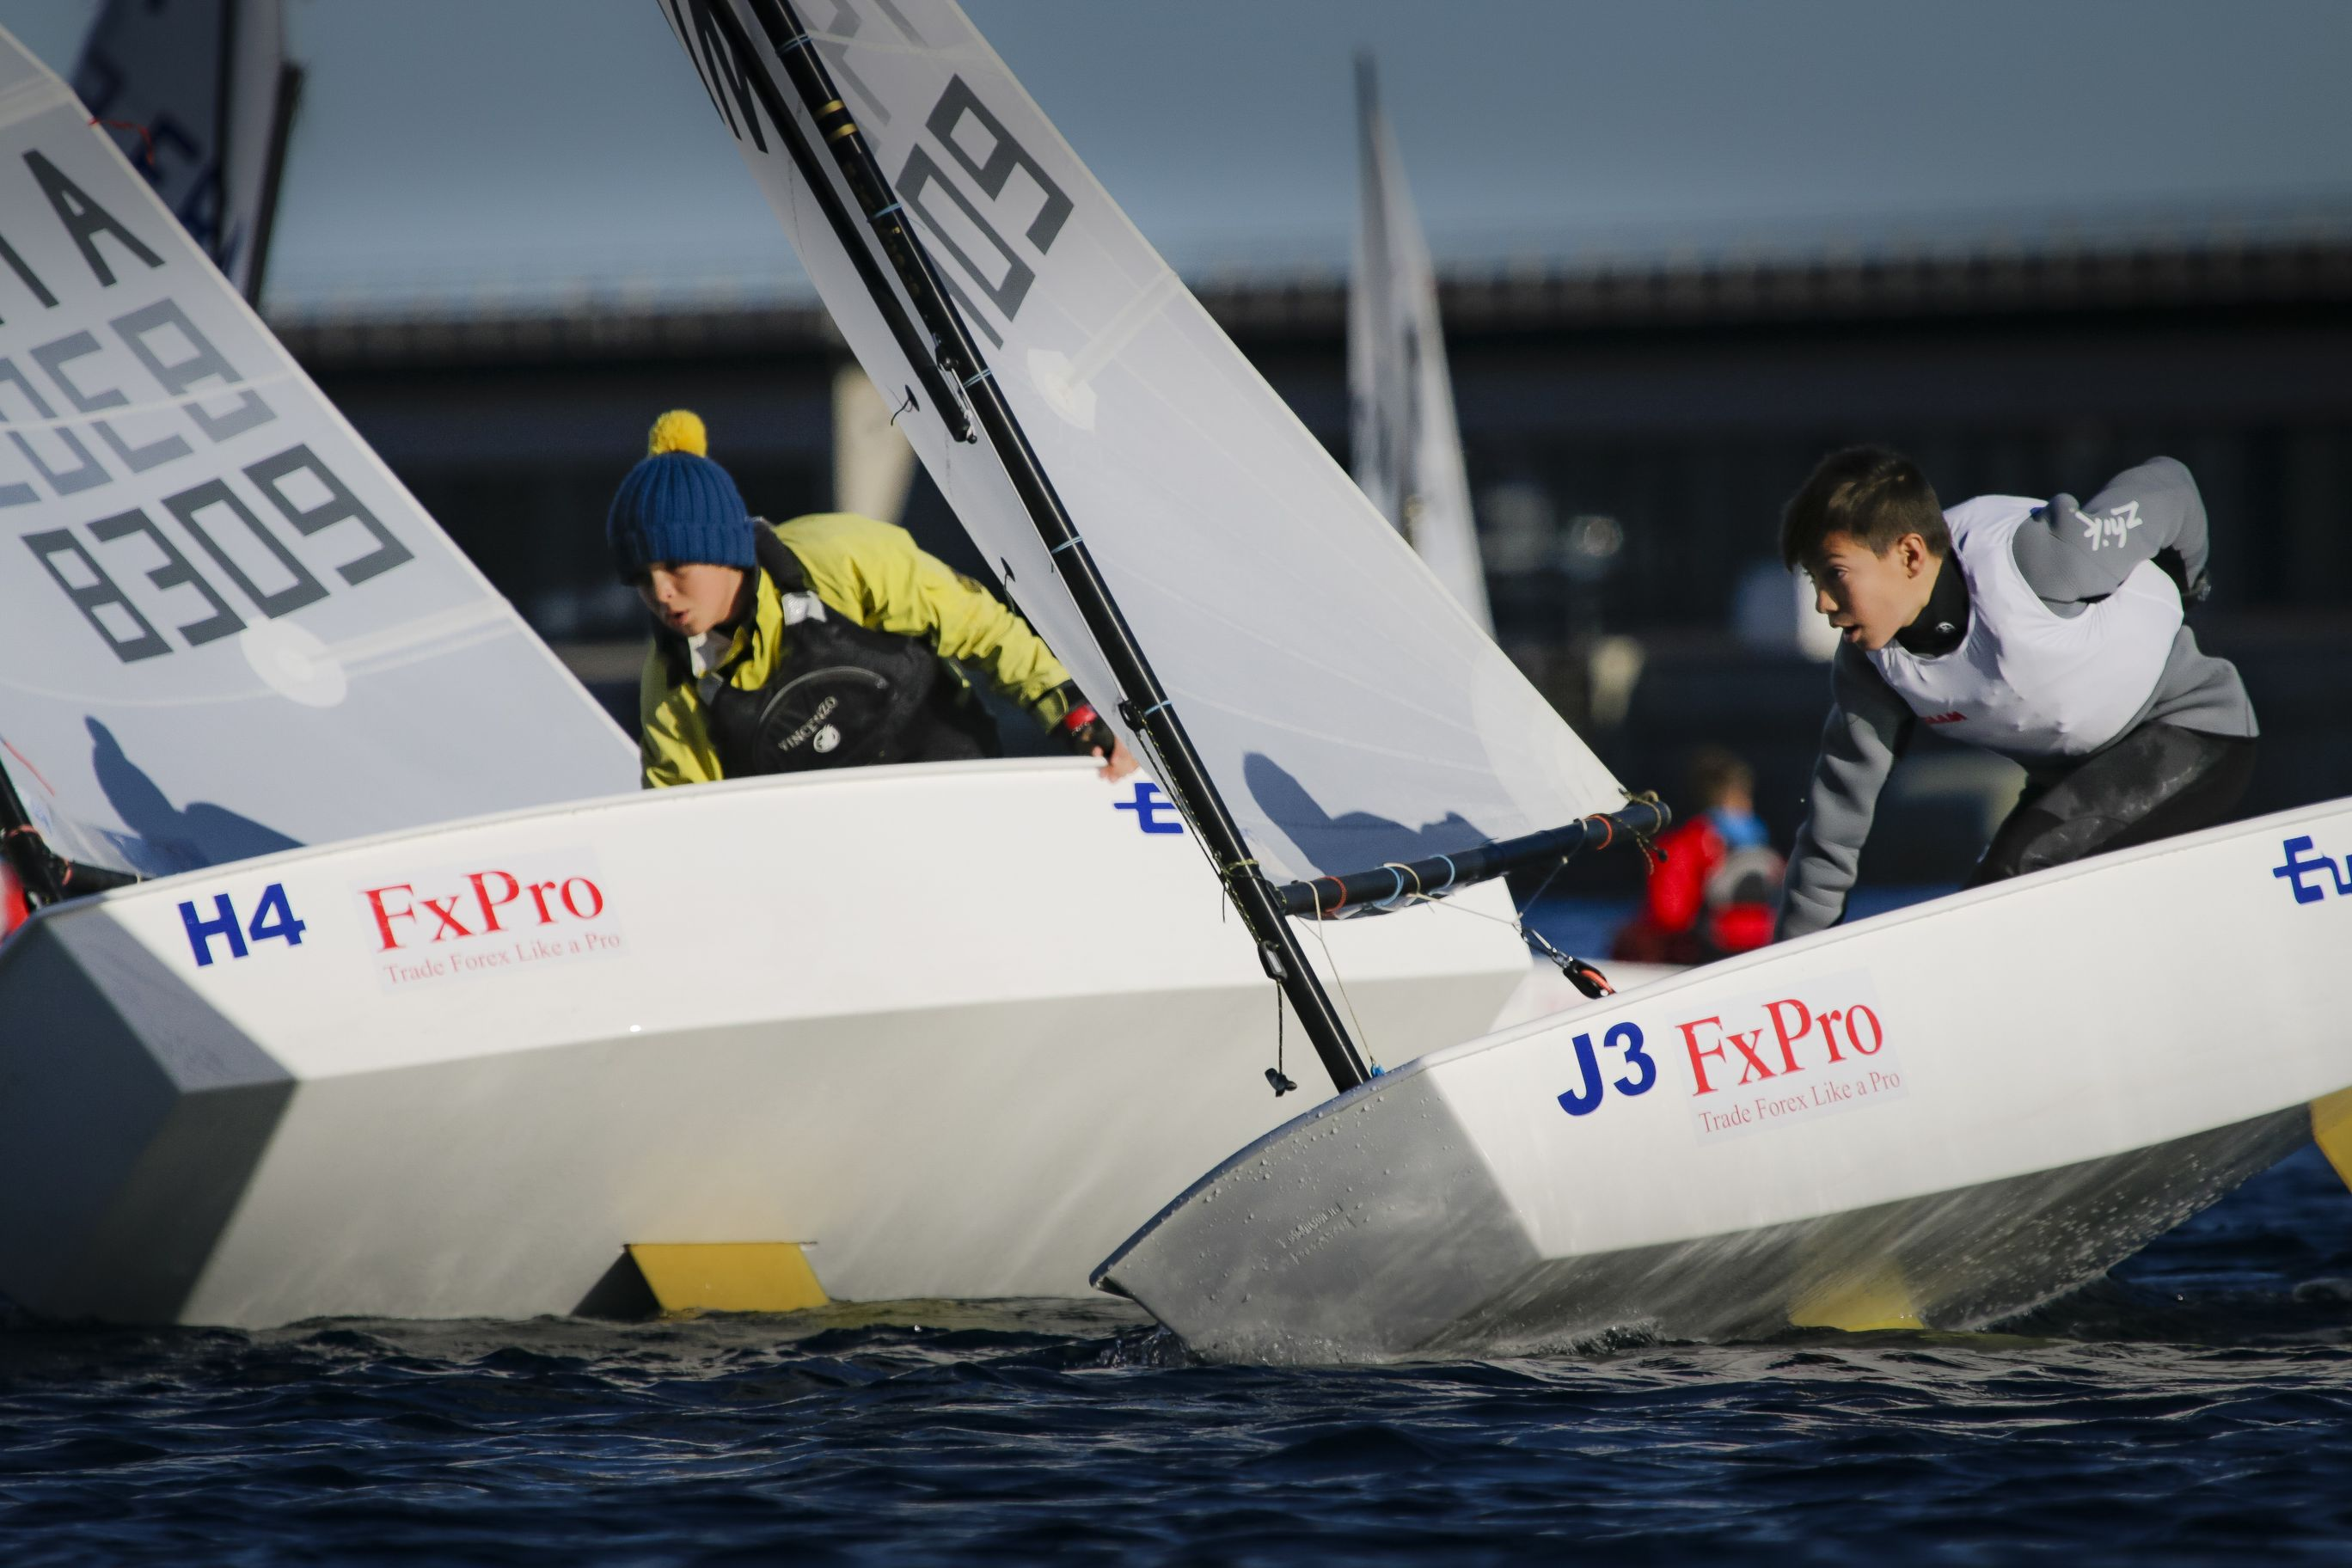 Monaco Optimist Team Race